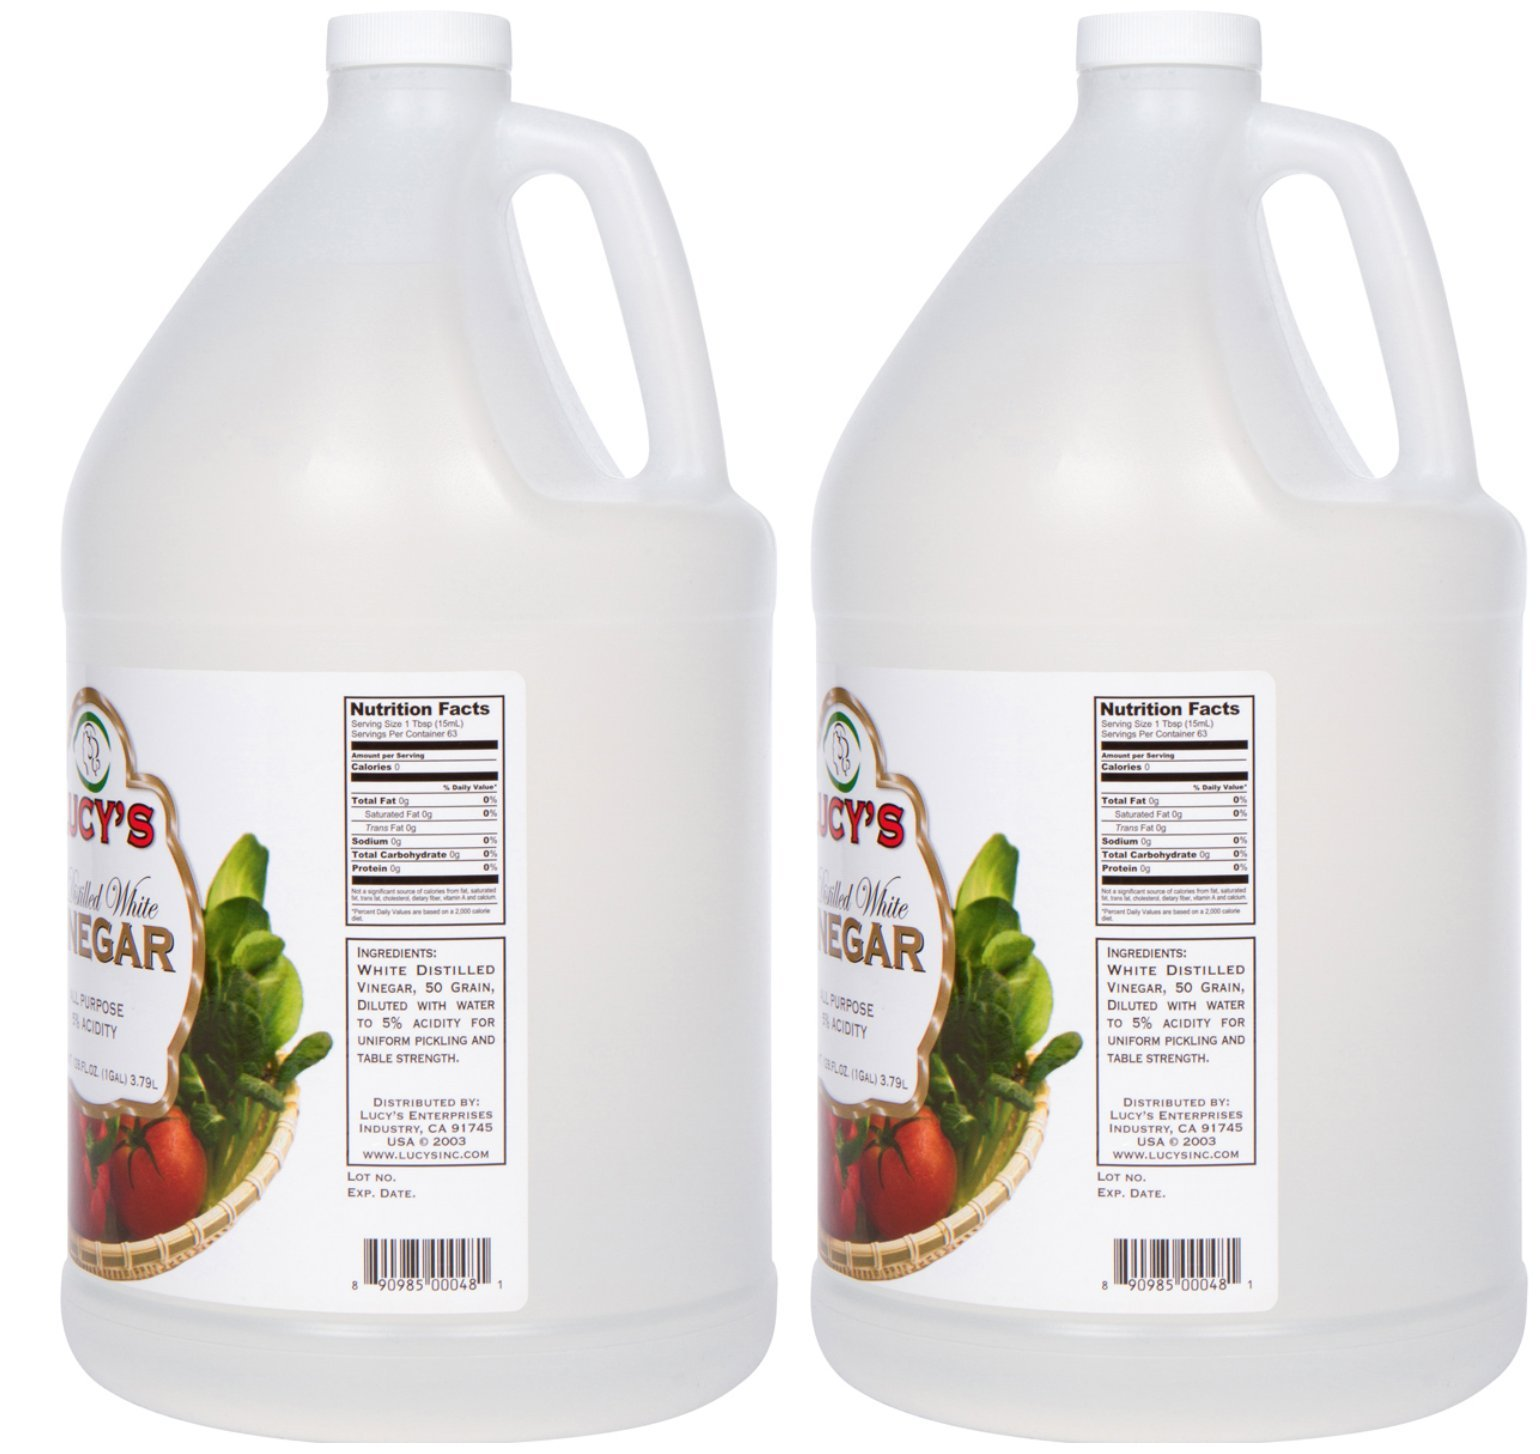 Lucy's Family Owned - Distilled White Vinegar, 1 Gallon 128oz. (Pack of 2) 2 USED NATIONWIDE - From health benefits and beauty hacks to cleanliness and cooking, Lucy's 5% Distilled White Vinegar is simply the right choice! Because of its extremely affordable price, absence of preservatives, durable bottle design, super-secure seal, and Kosher Certification, this vinegar is currently being used nationwide. Customers around the country have fallen in love with Lucy's vinegar! COOKING/HEALTH - Spices up dipping sauces, preserves food, prevents food spoilage, develops flavor, makes homemade bread crusts golden brown, prevents cheese from molding, freshens wilted vegetable's, substitutes for wine, salt, or buttermilk, brightens hair, softens cuticles, whitens teeth, prevents nail polish from chipping, and can be used as a sunburn relief. CLEANING - Brightens colored clothes, removes deodorant stains, gets rid of water rings on furniture, eases ballpoint-pen marks, cleans window blinds, restores rugs, removes carpet stains, brightens up brickwork, revitalizes wood paneling, revitalizes leather furniture, conceals scratches in wood furniture, removes candle wax, unclogs and deodorizes drains, gets rid of smoke odor, cleans chrome and stainless steel, and disinfects cutting boards.